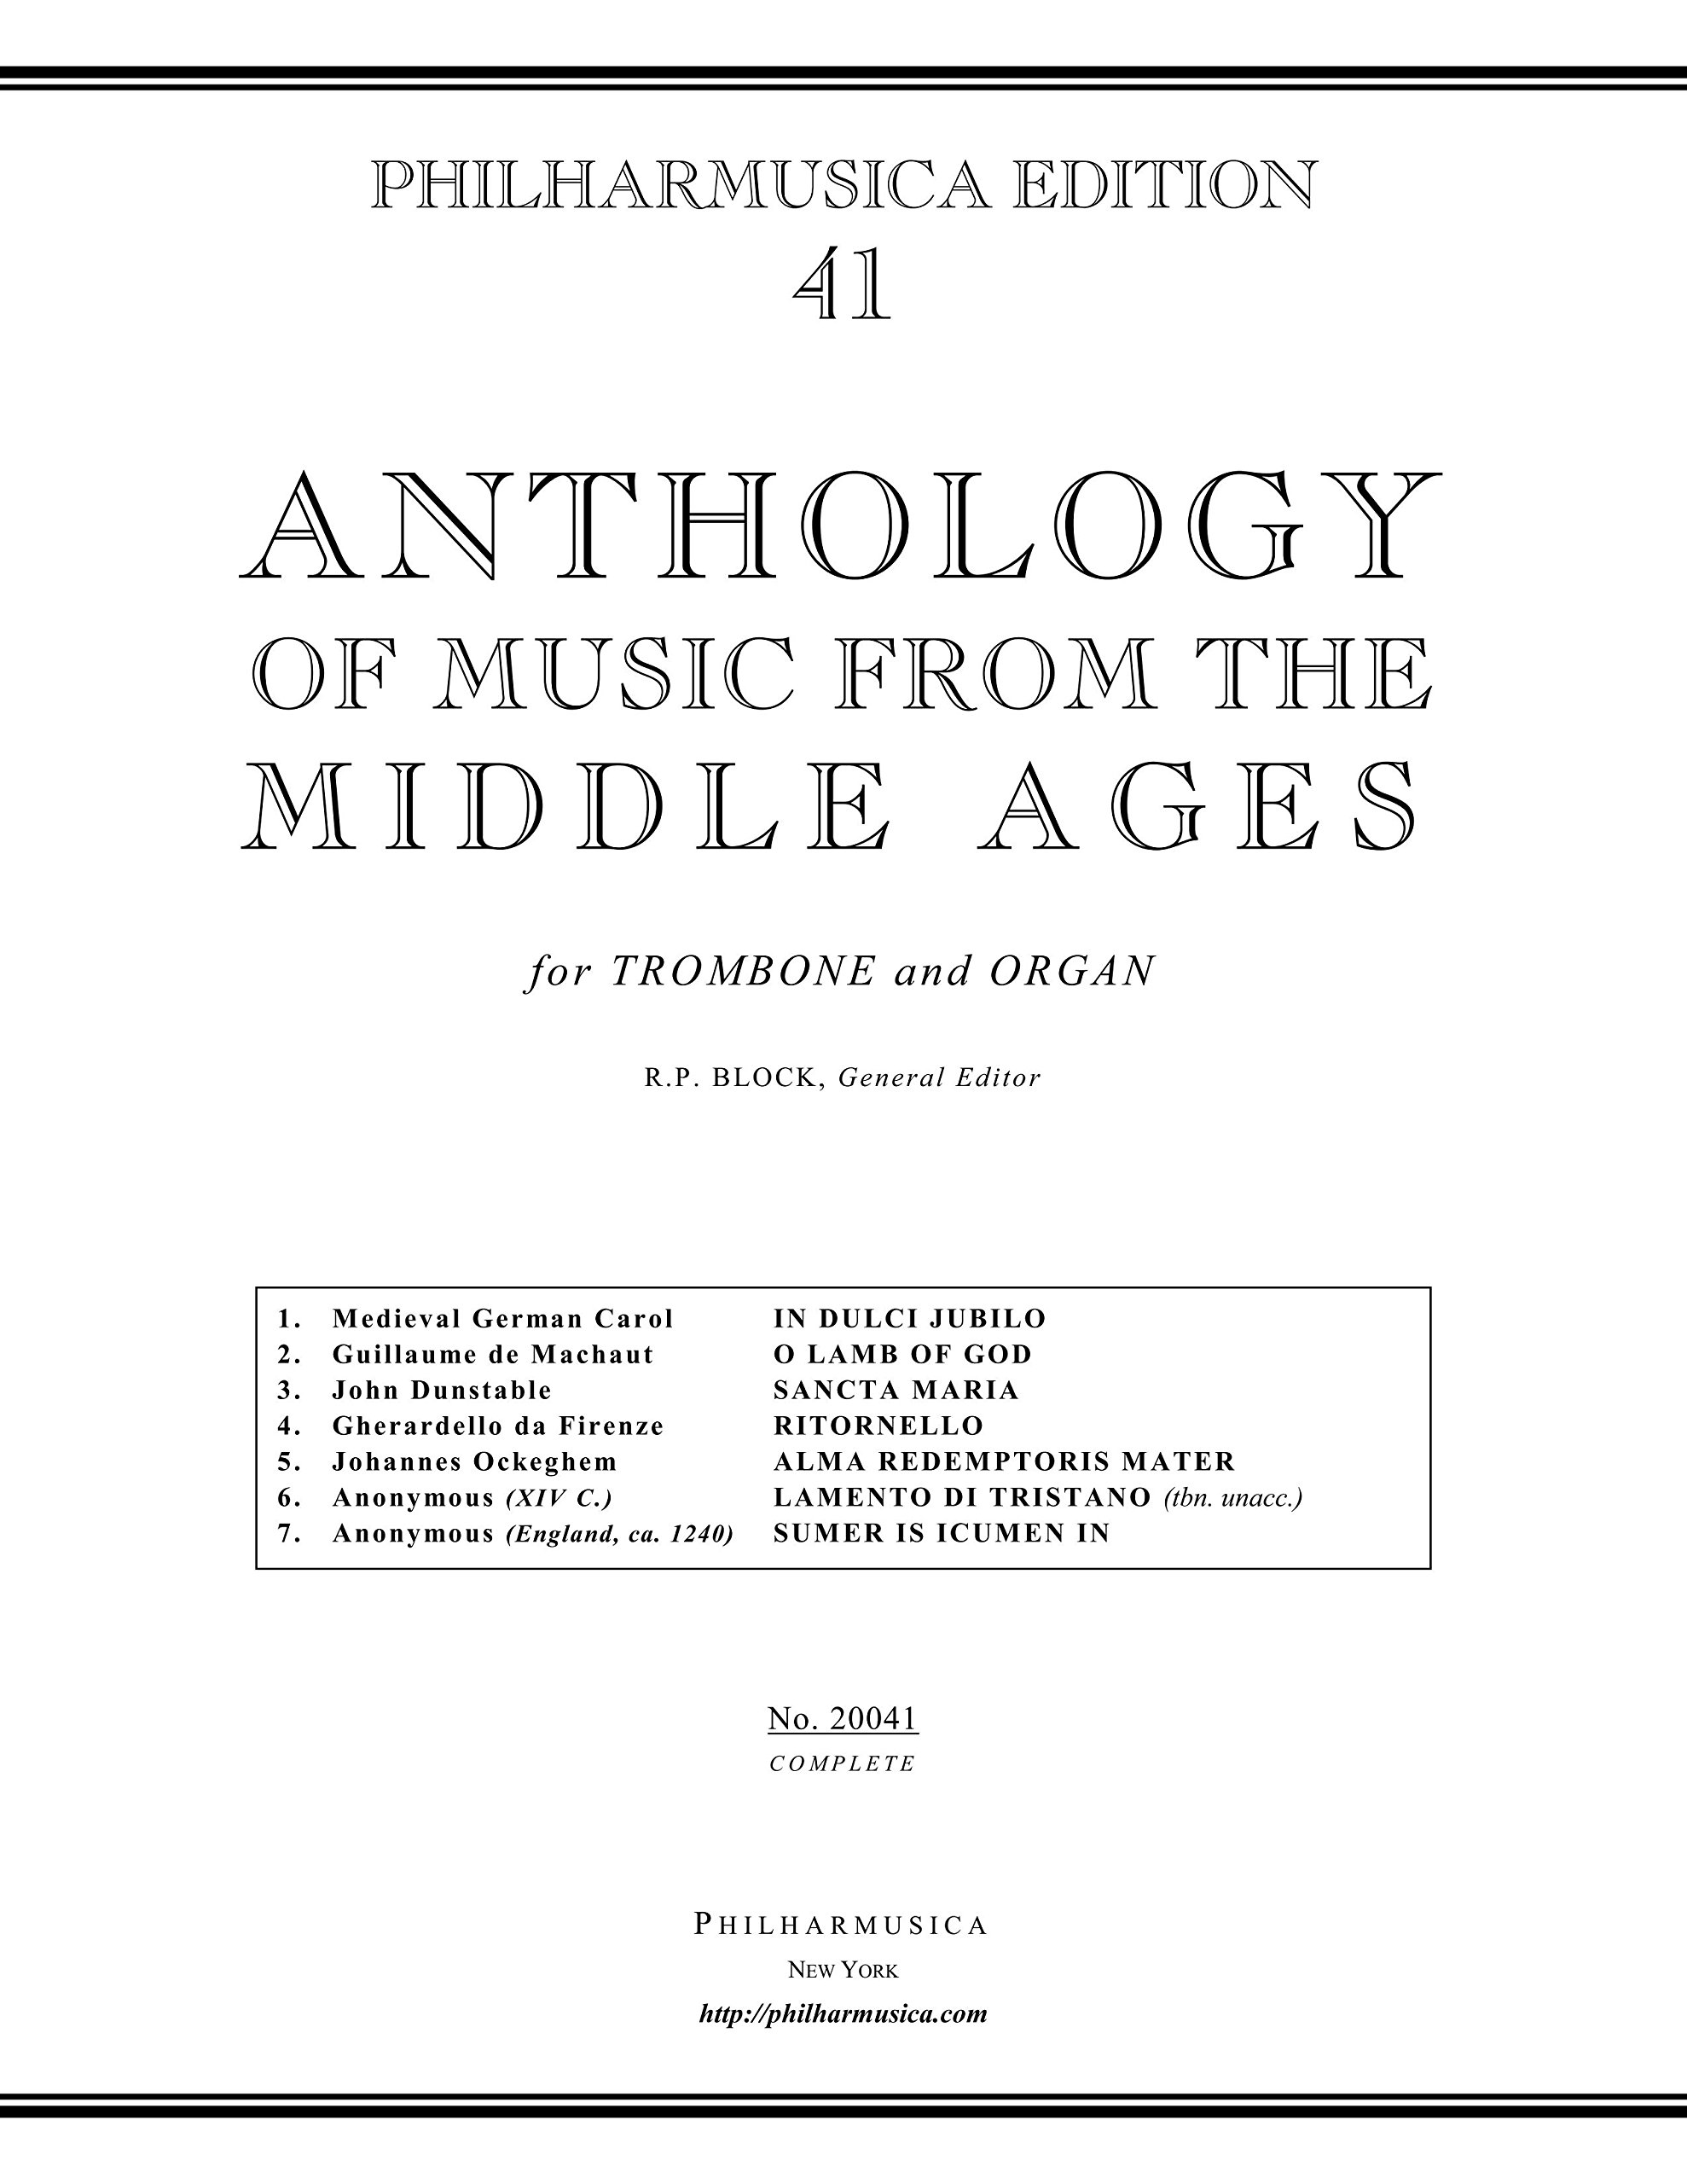 Anthology of Music from the Middle Ages, edition for Trombone and Organ (20041)